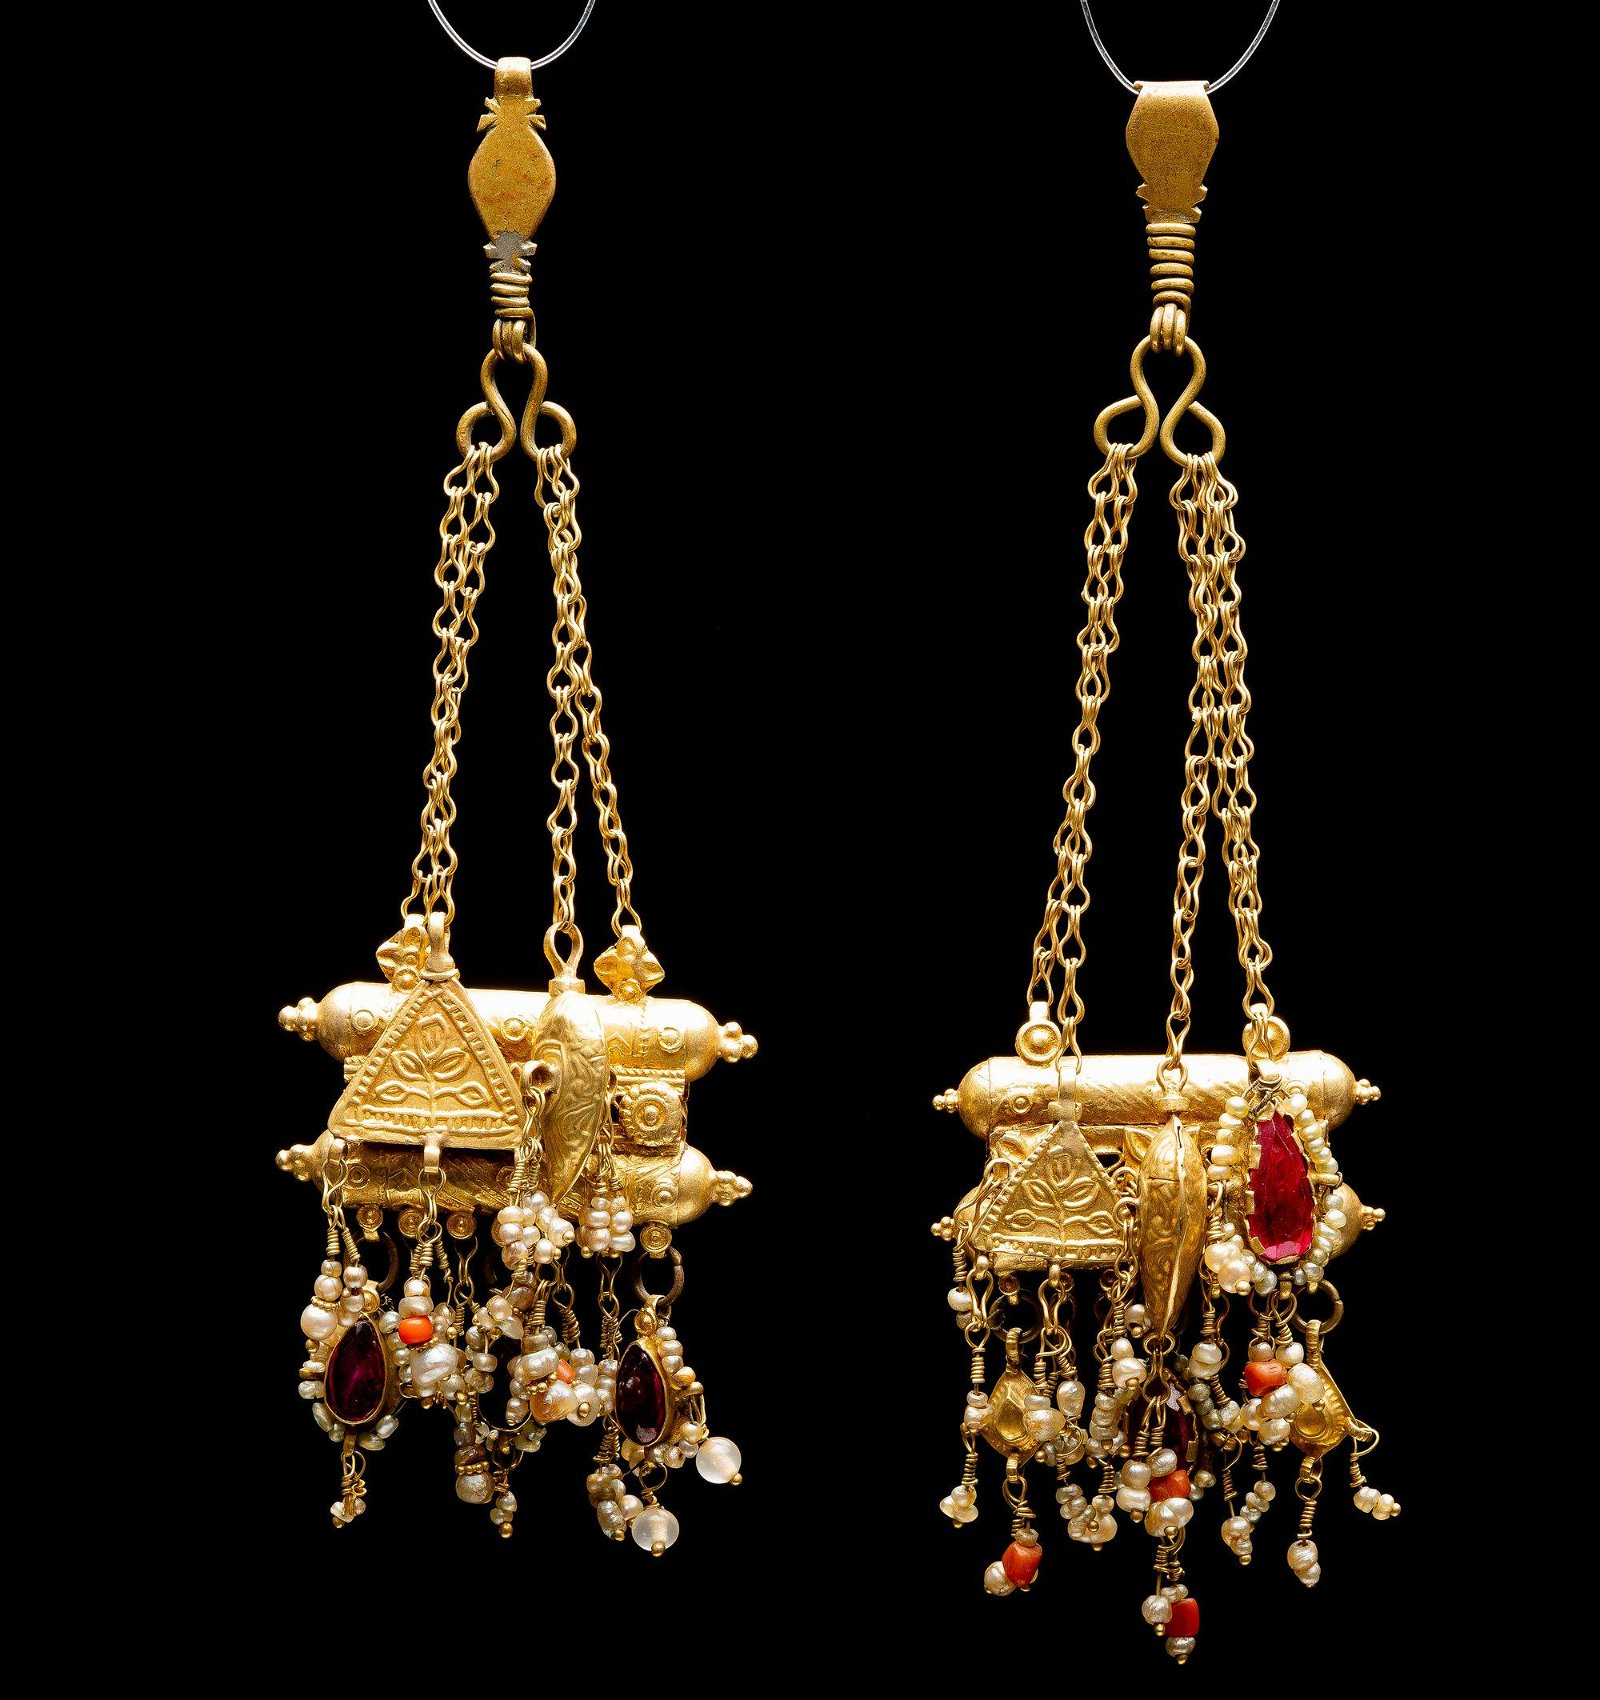 A rare pair of gold filigree,coral and corundum amulet